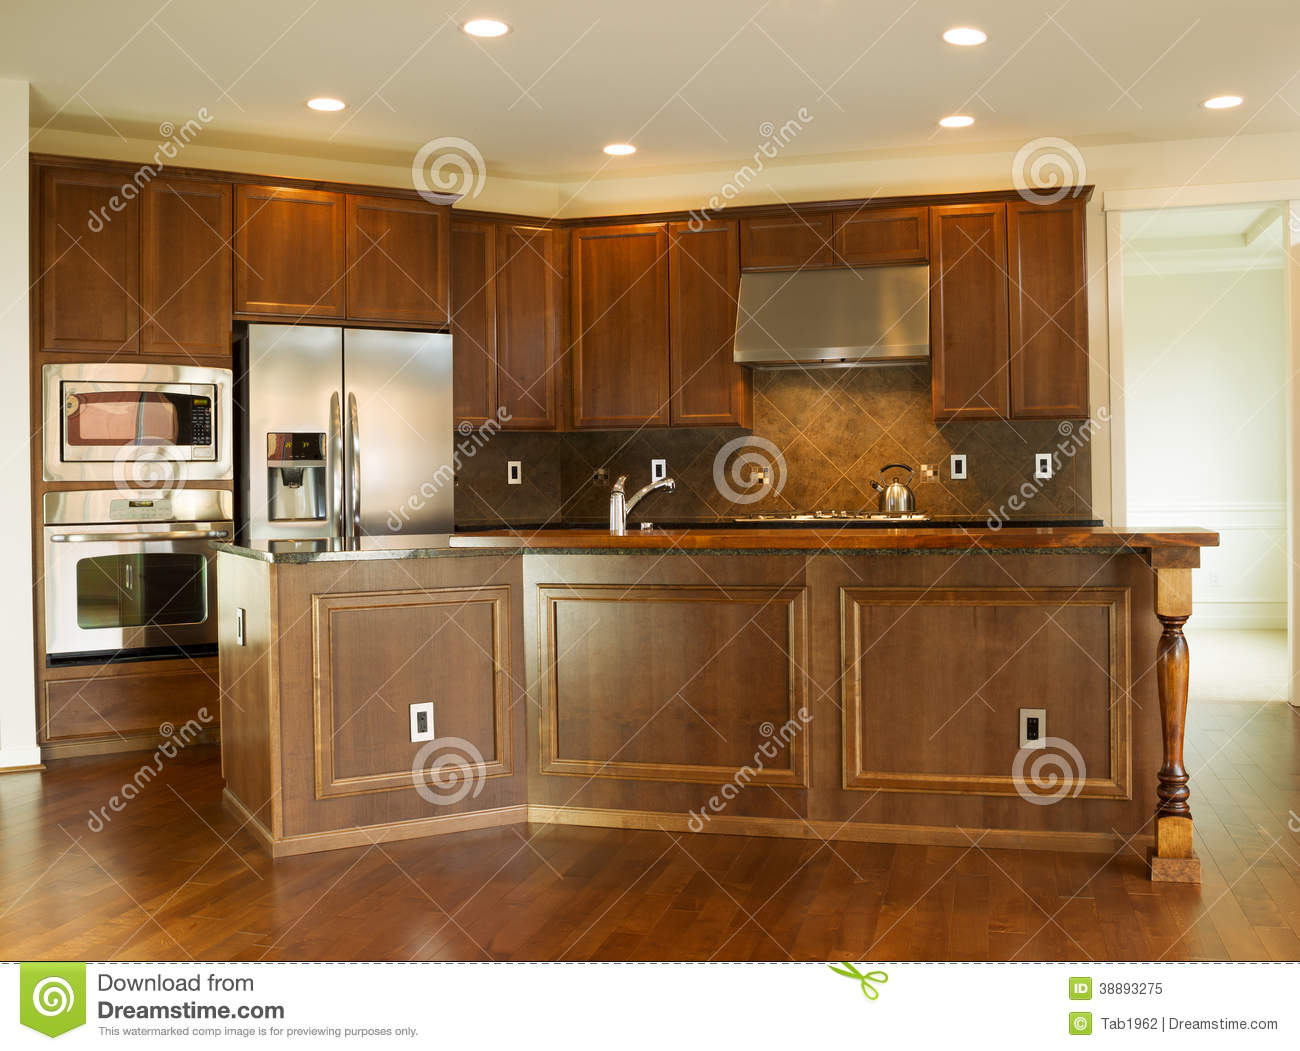 Best Time To Buy Kitchen Appoiances